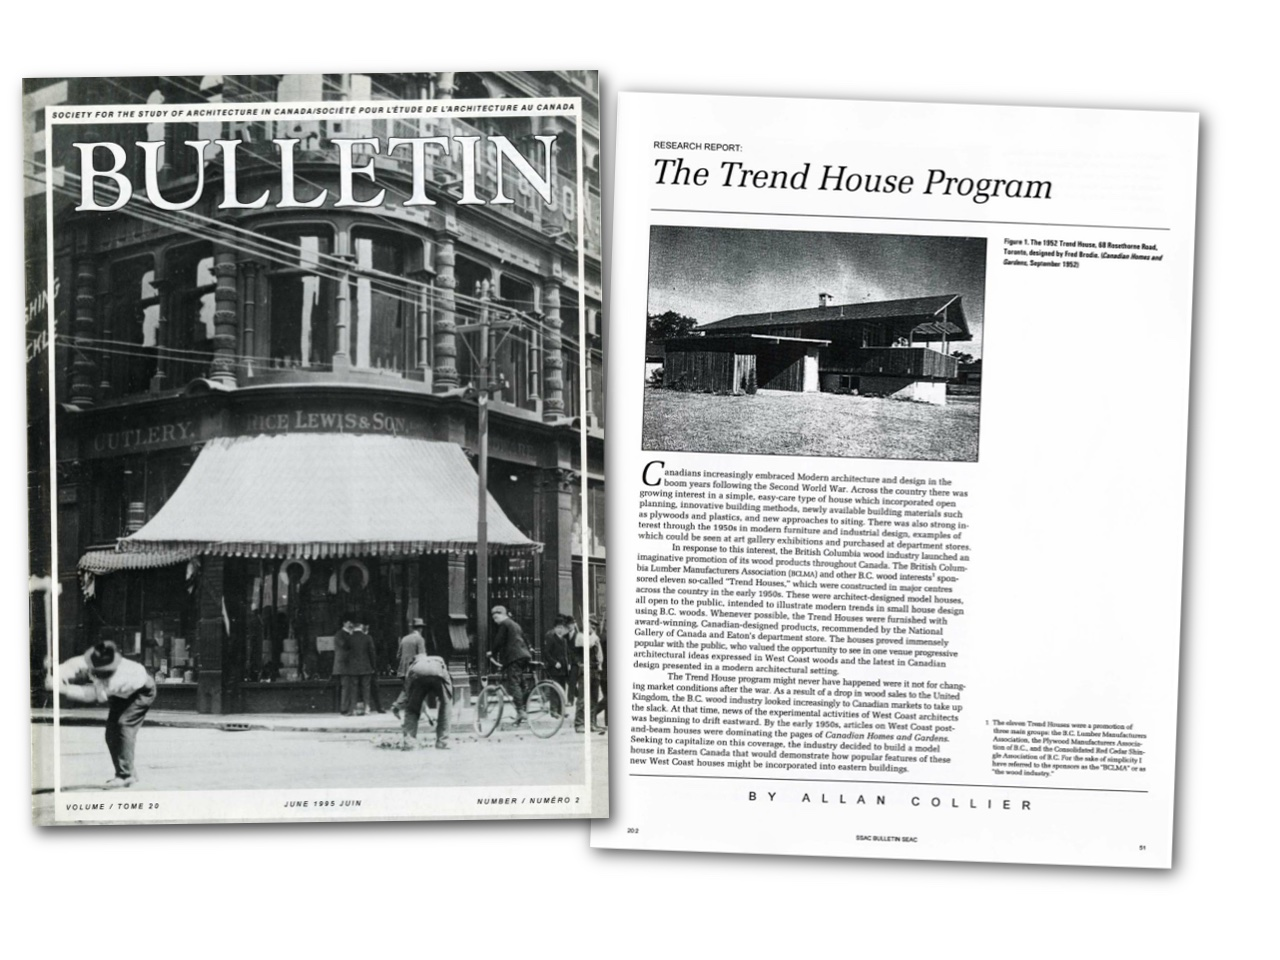 Image of SSAC Bulletin showing the article on the Trend House Program by Allan Collier